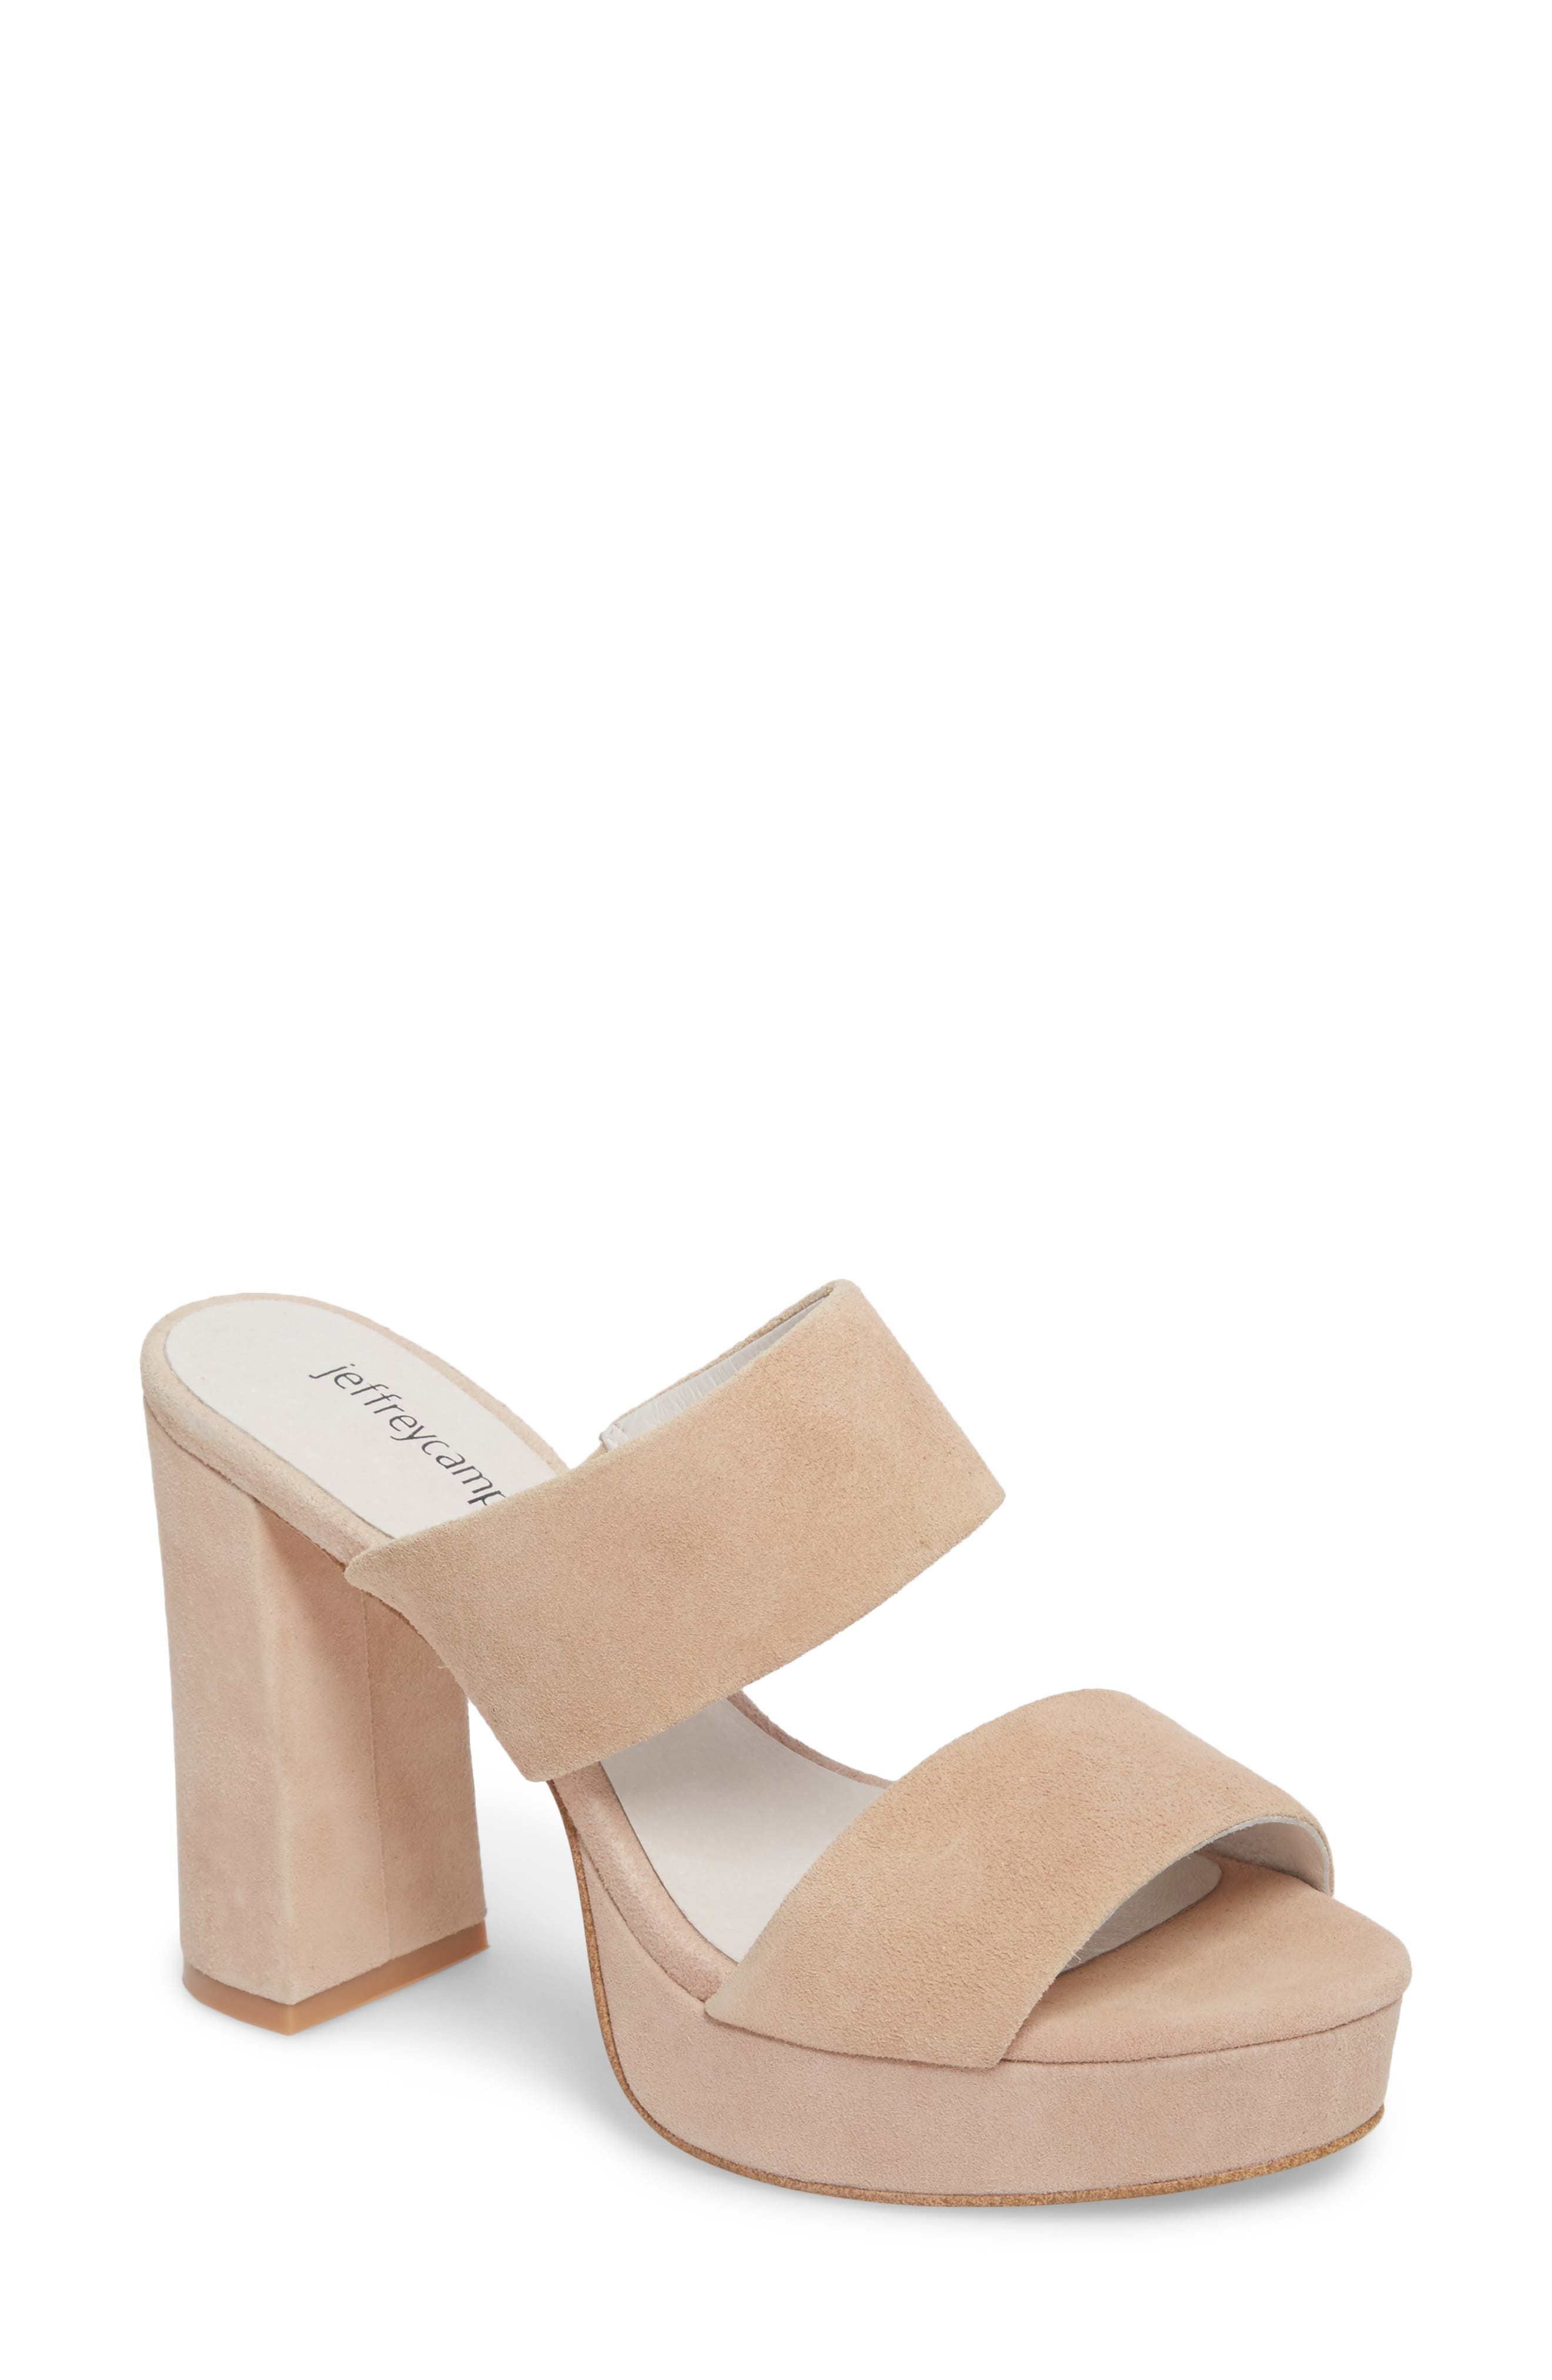 Jeffrey Campbell Adriana Double Band Platform Sandal, Pink